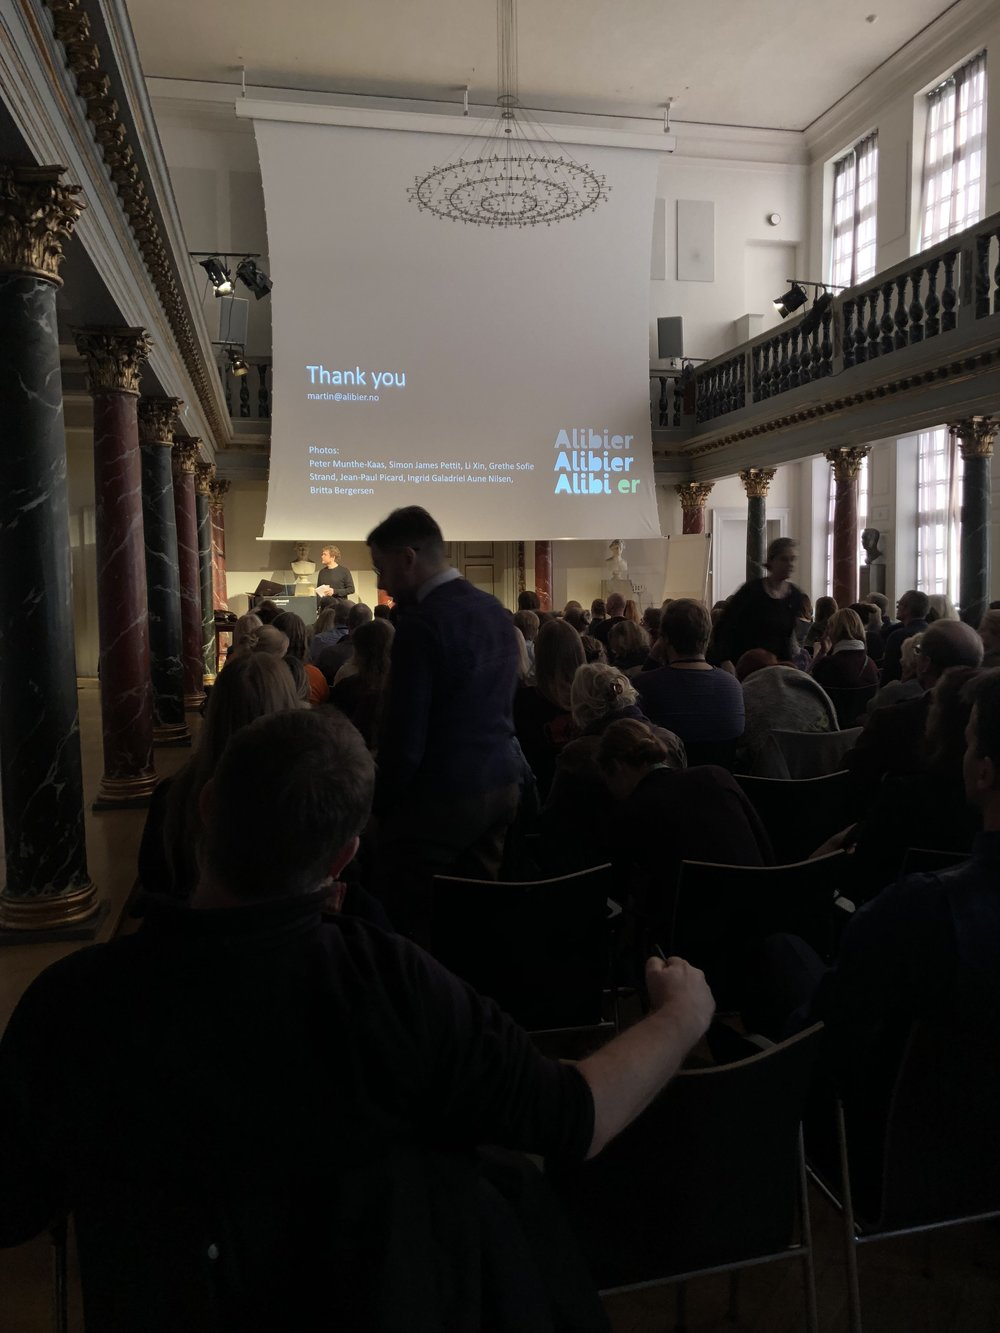 The main conference hall in the National Museum of Denmark, Copenhagen